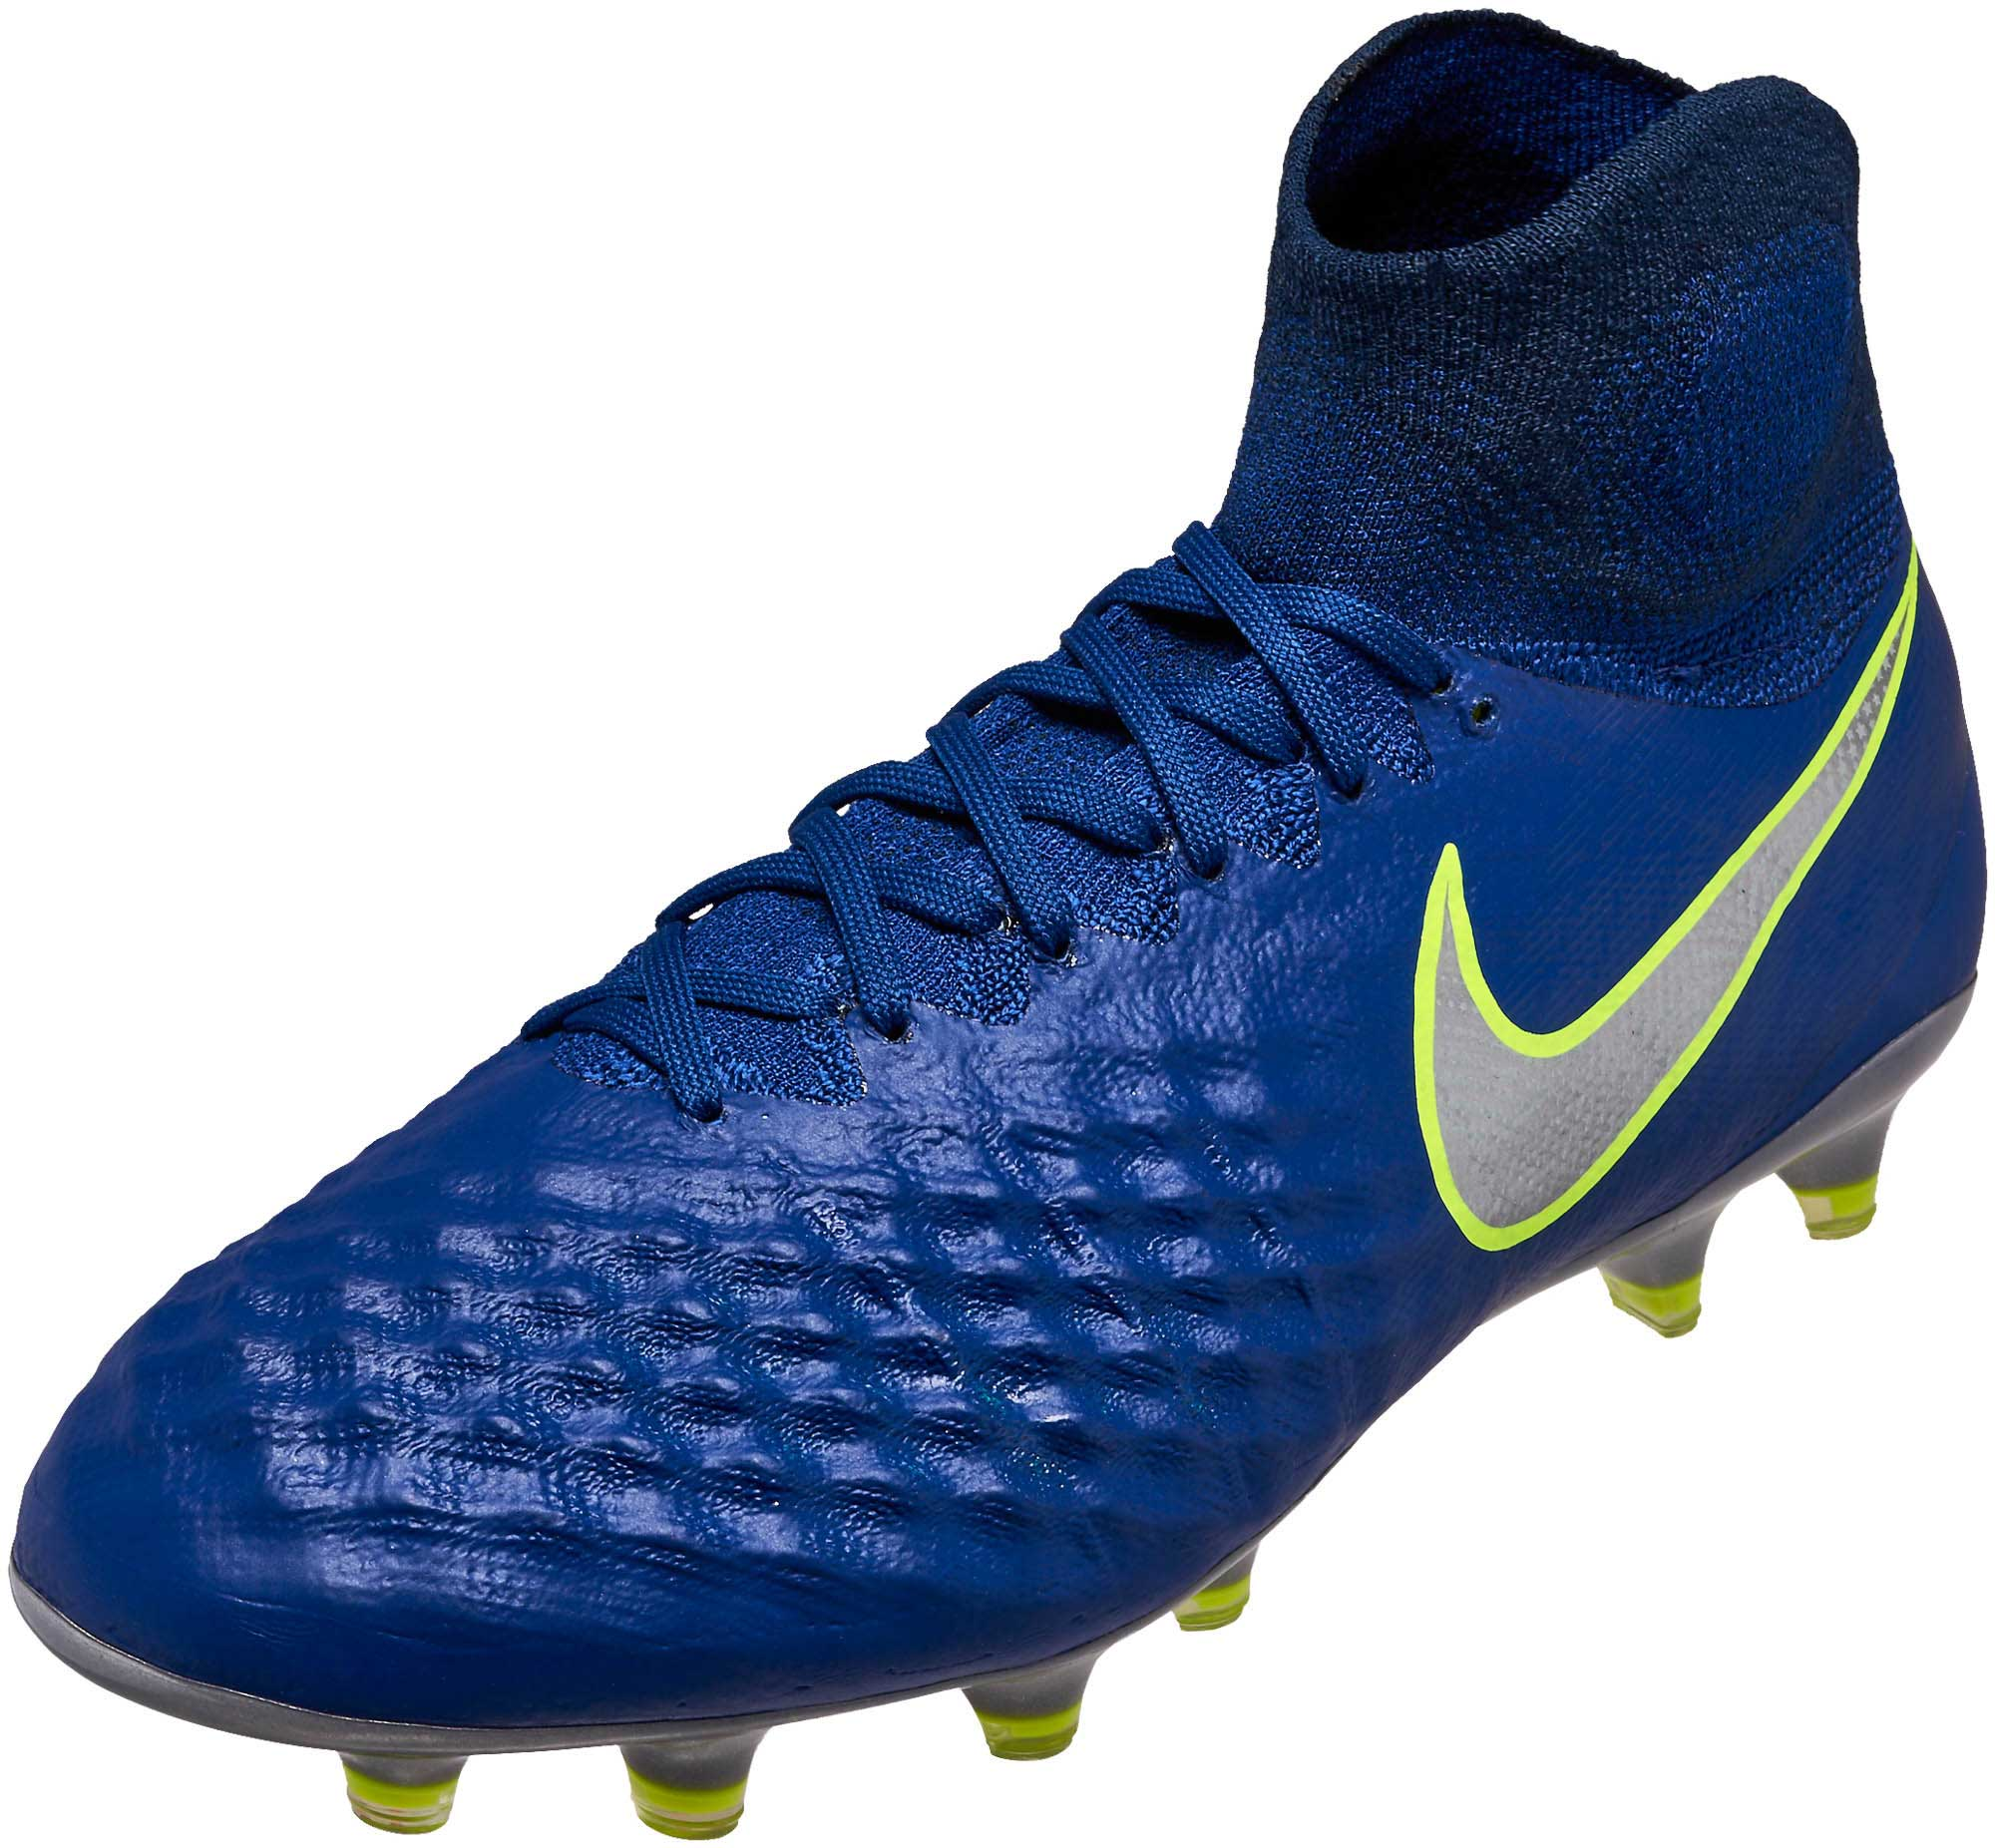 wholesale dealer ea277 26de6 Nike Magista Obra II FG Soccer Cleats – Deep Royal  Chrome